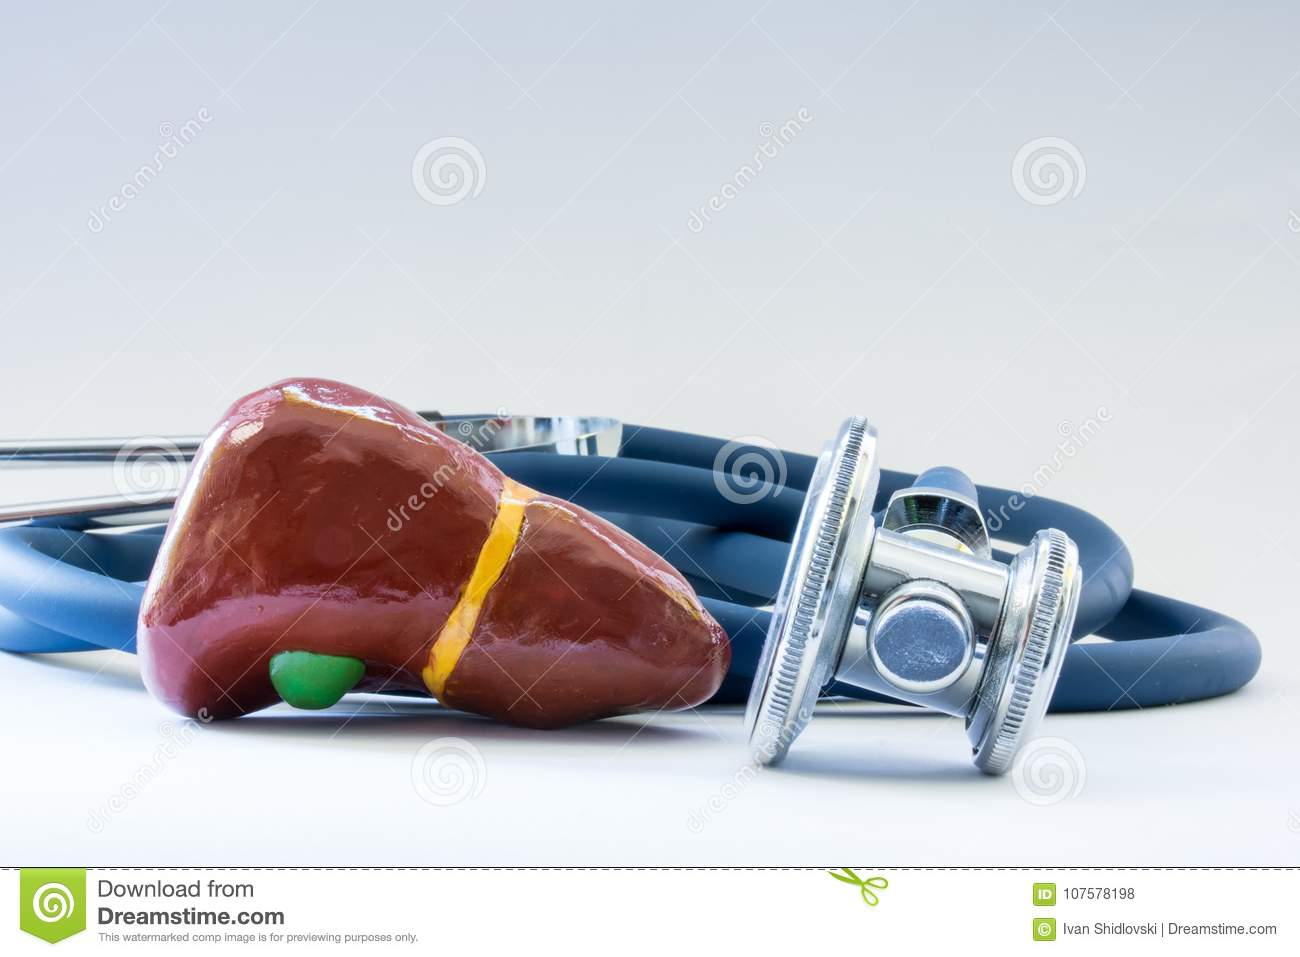 Liver near the stethoscope as a symbol of a health of organ, care, diagnostics, medical testing, treatment and prevention of disea